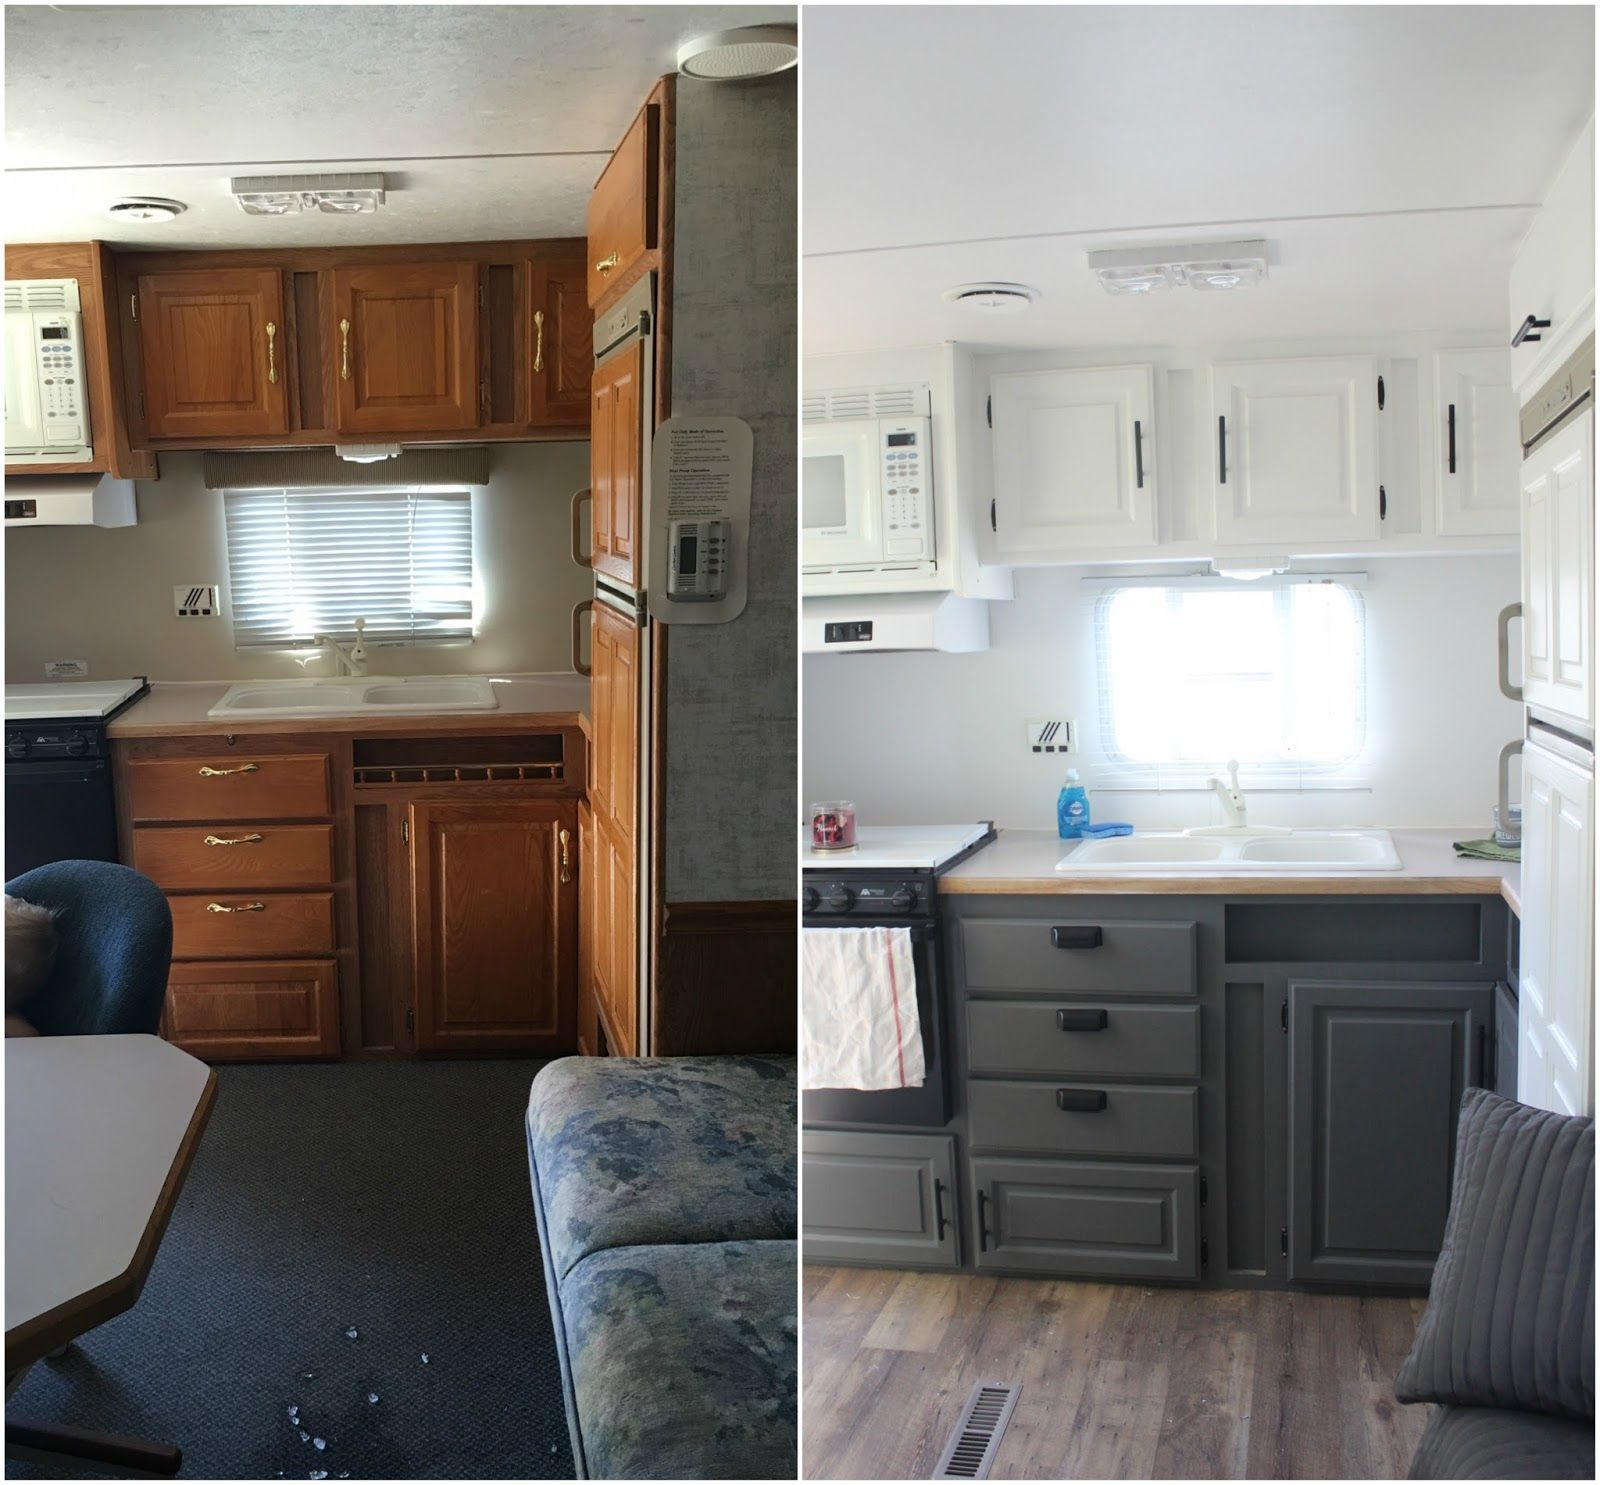 Diy rv interiors - Camper Remodel Ideas 54